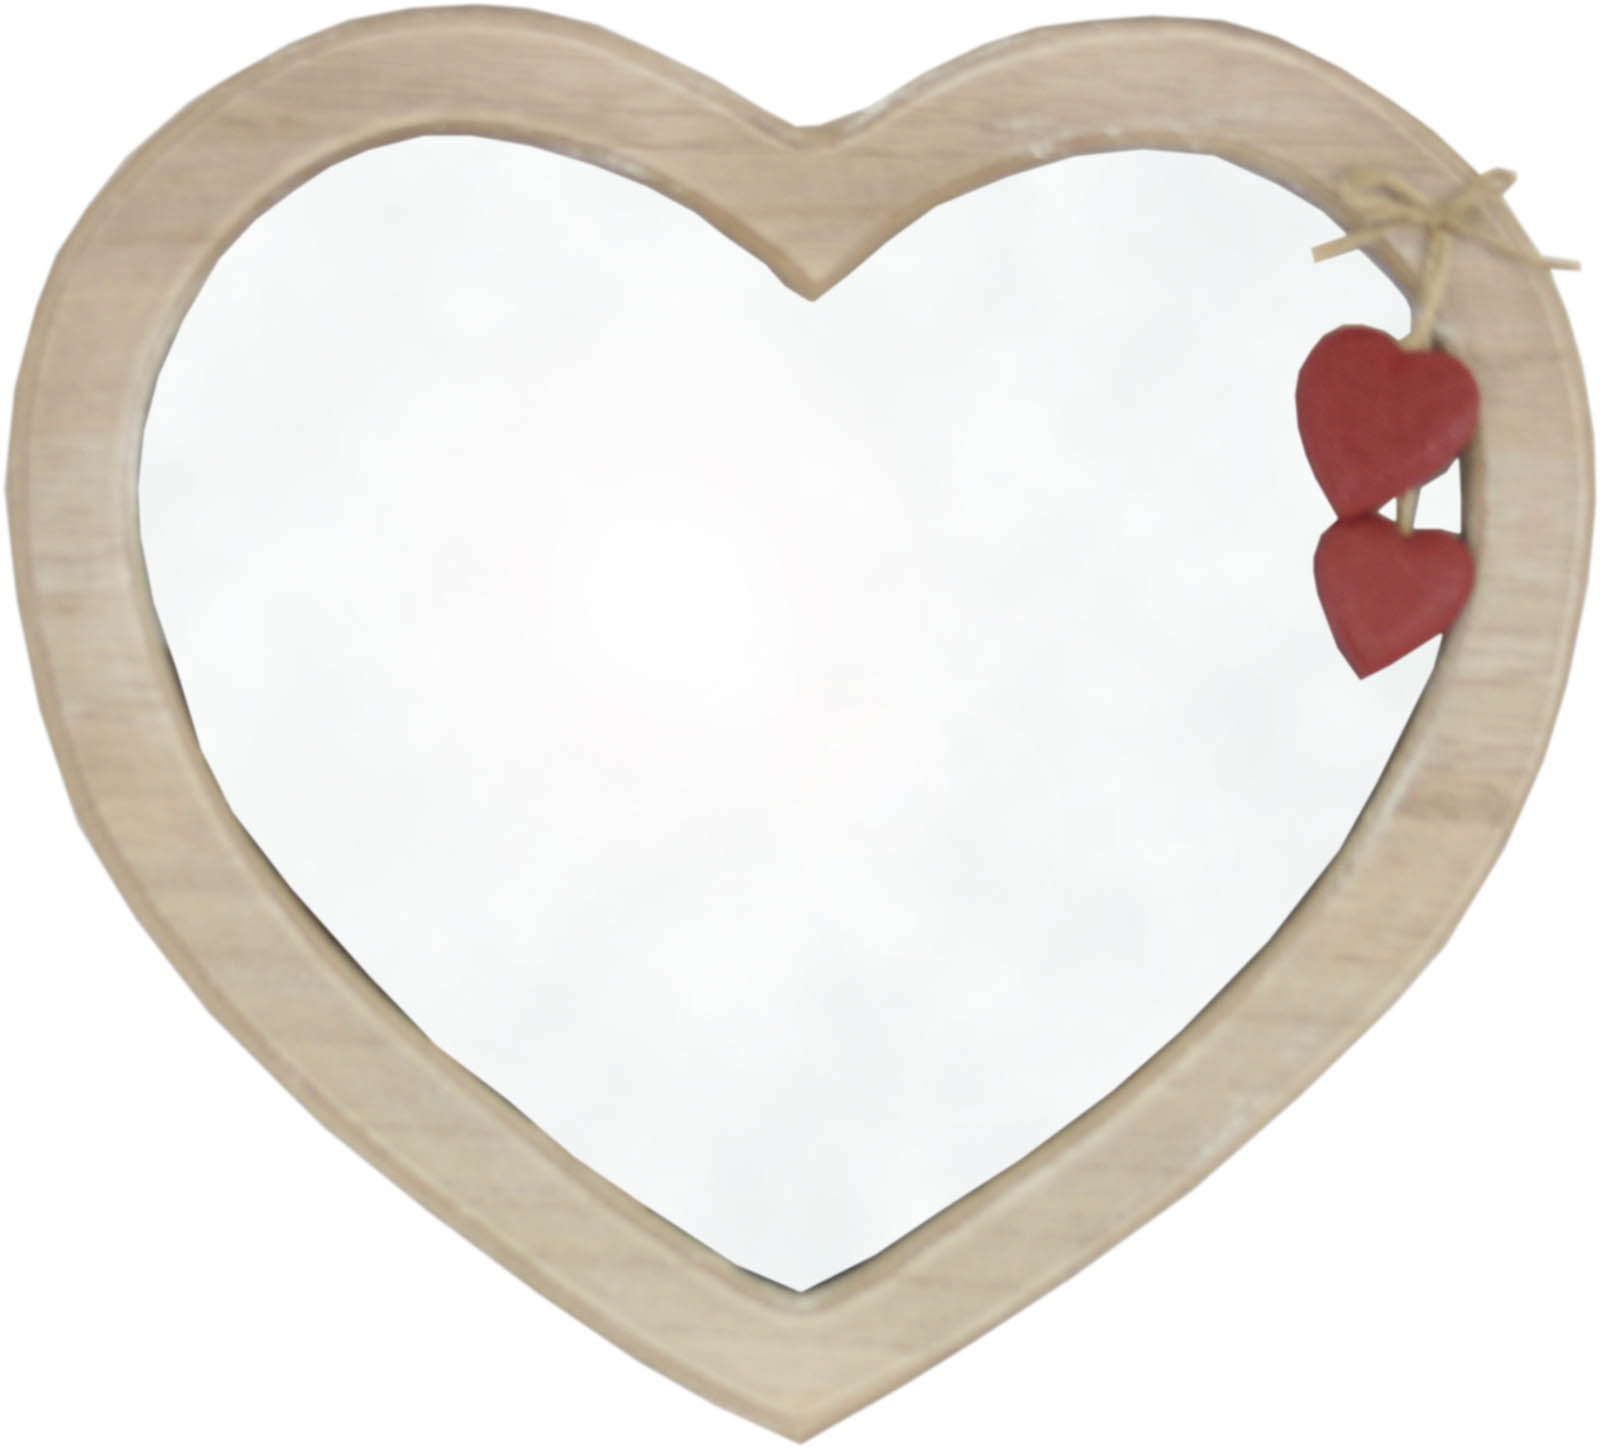 Hearts clipart rustic heart Shaped Hanging Hearts with Heart